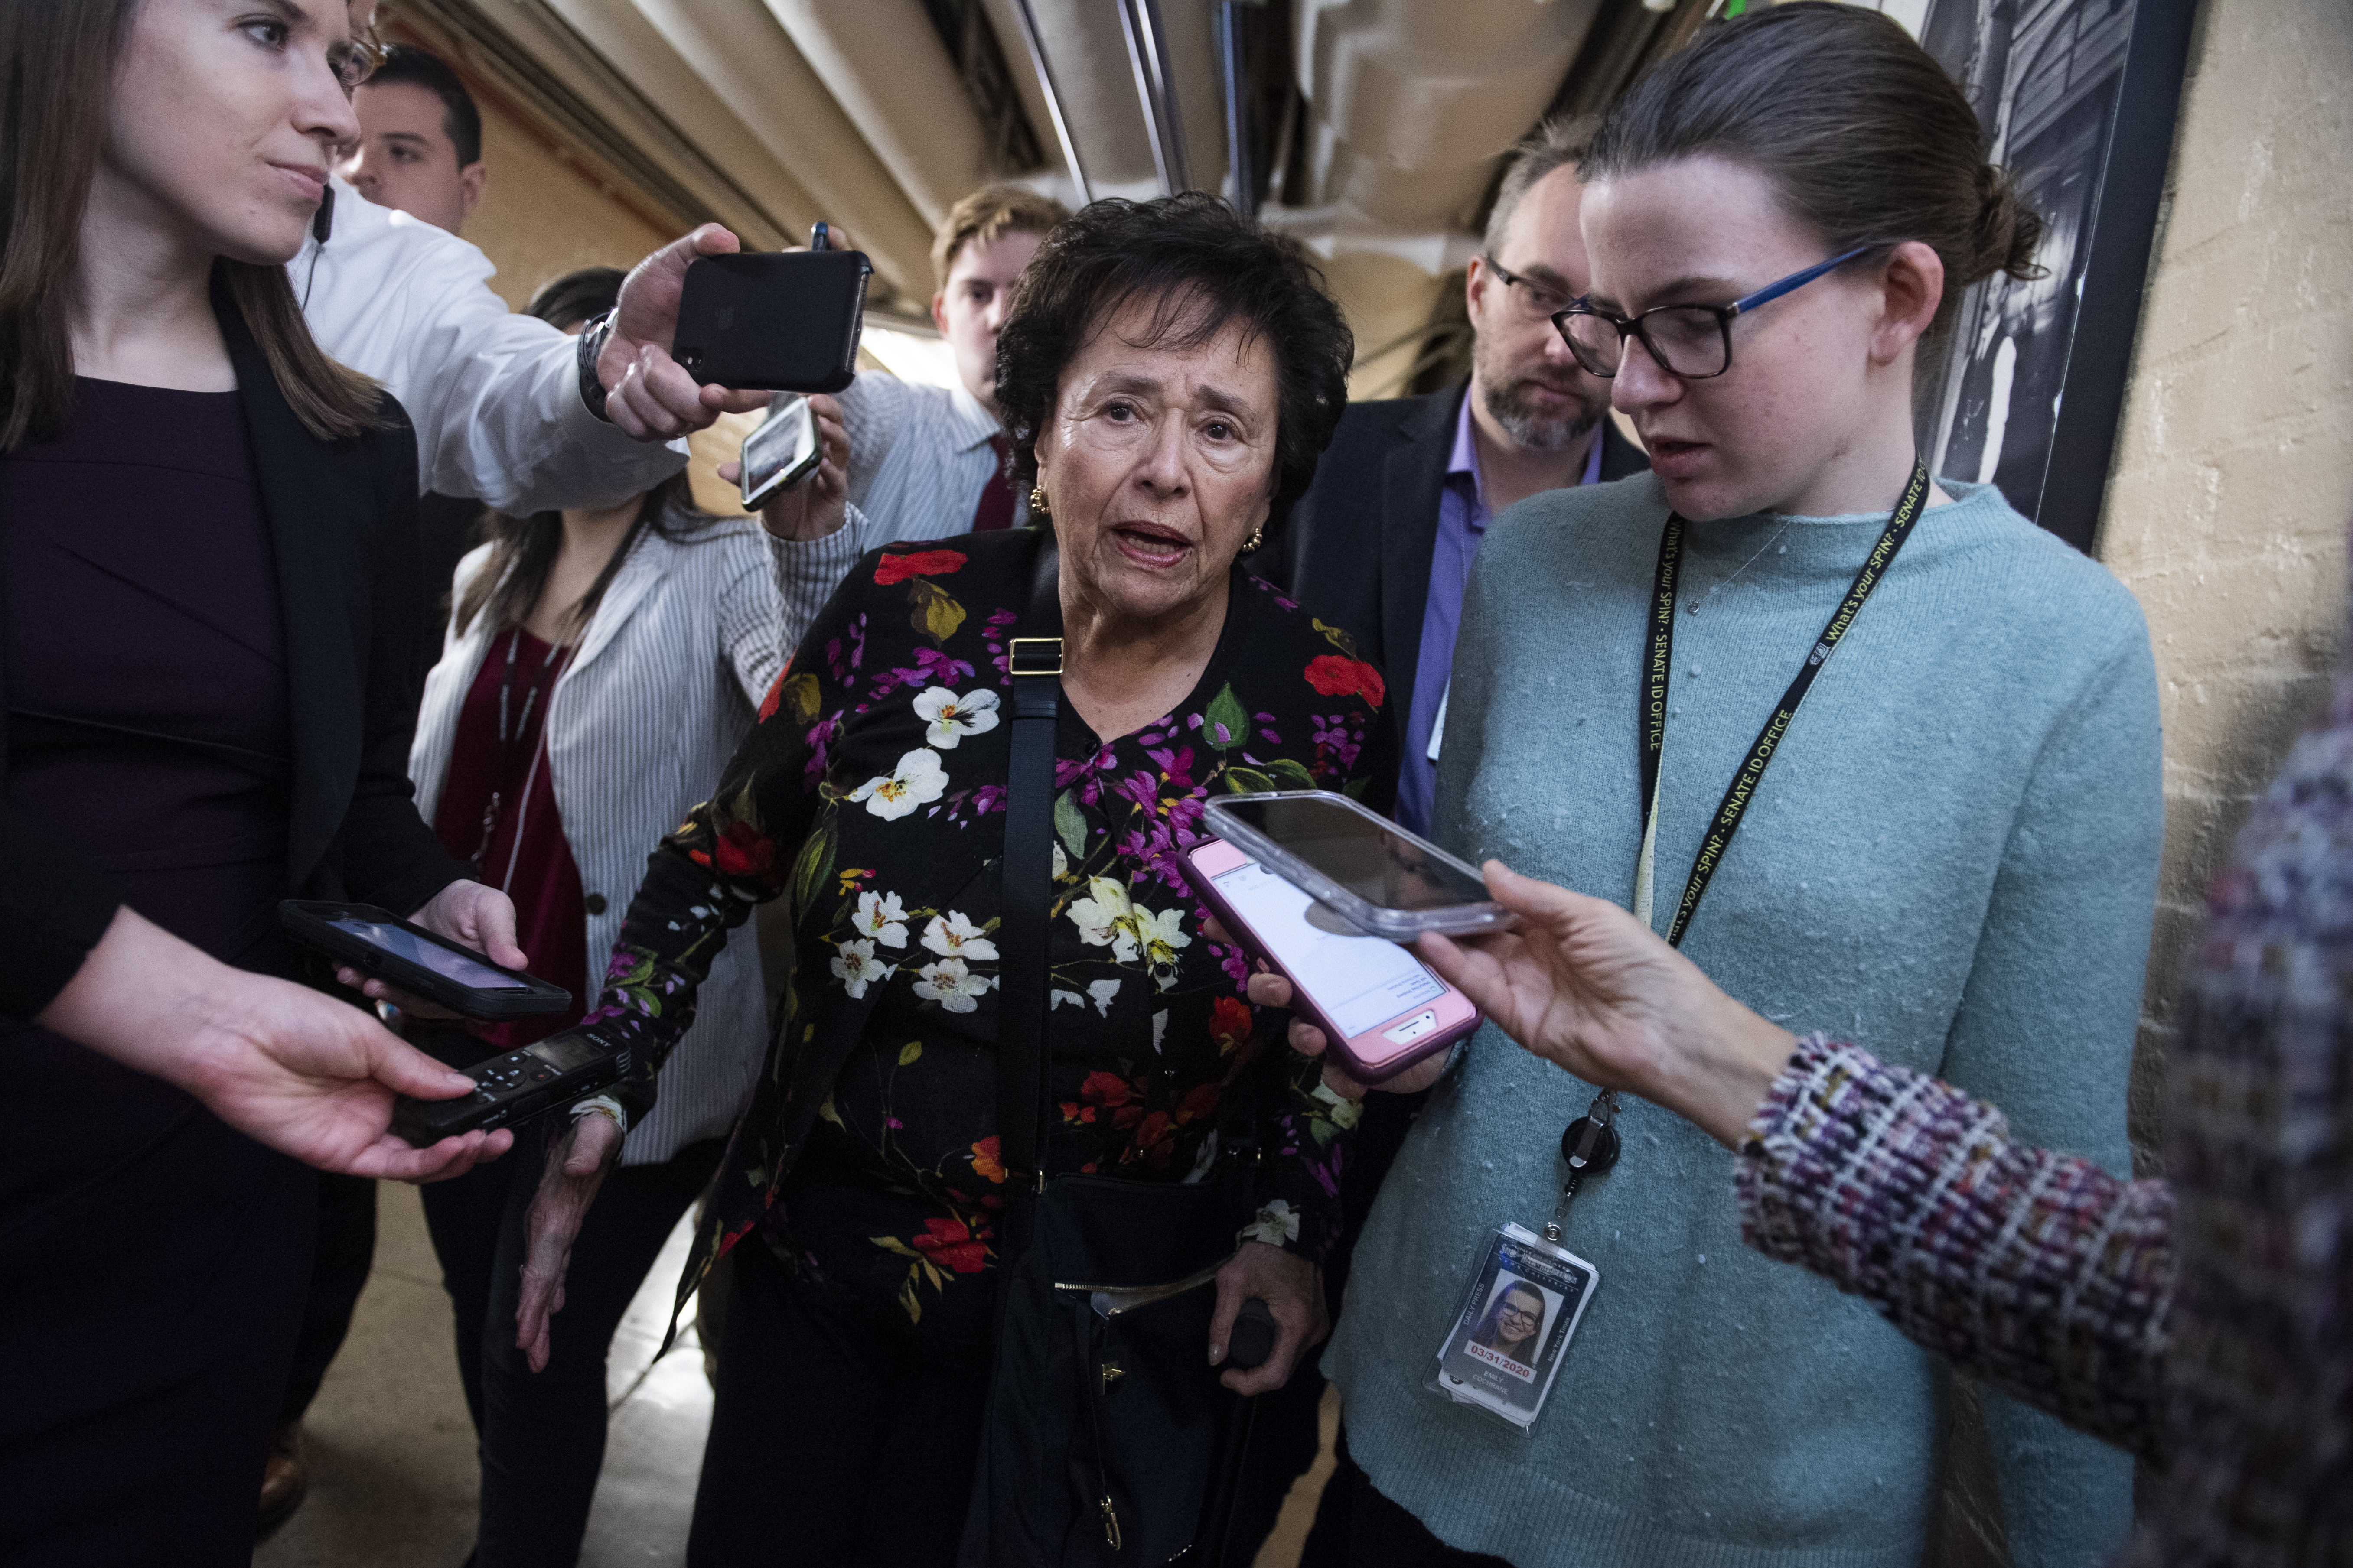 UNITED STATES - DECEMBER 4: Rep. Nita Lowey, D-N.Y., leaves a meeting of the House Democratic Caucus in the Capitol on Wednesday, December 4, 2019. (Photo By Tom Williams/CQ Roll Call)